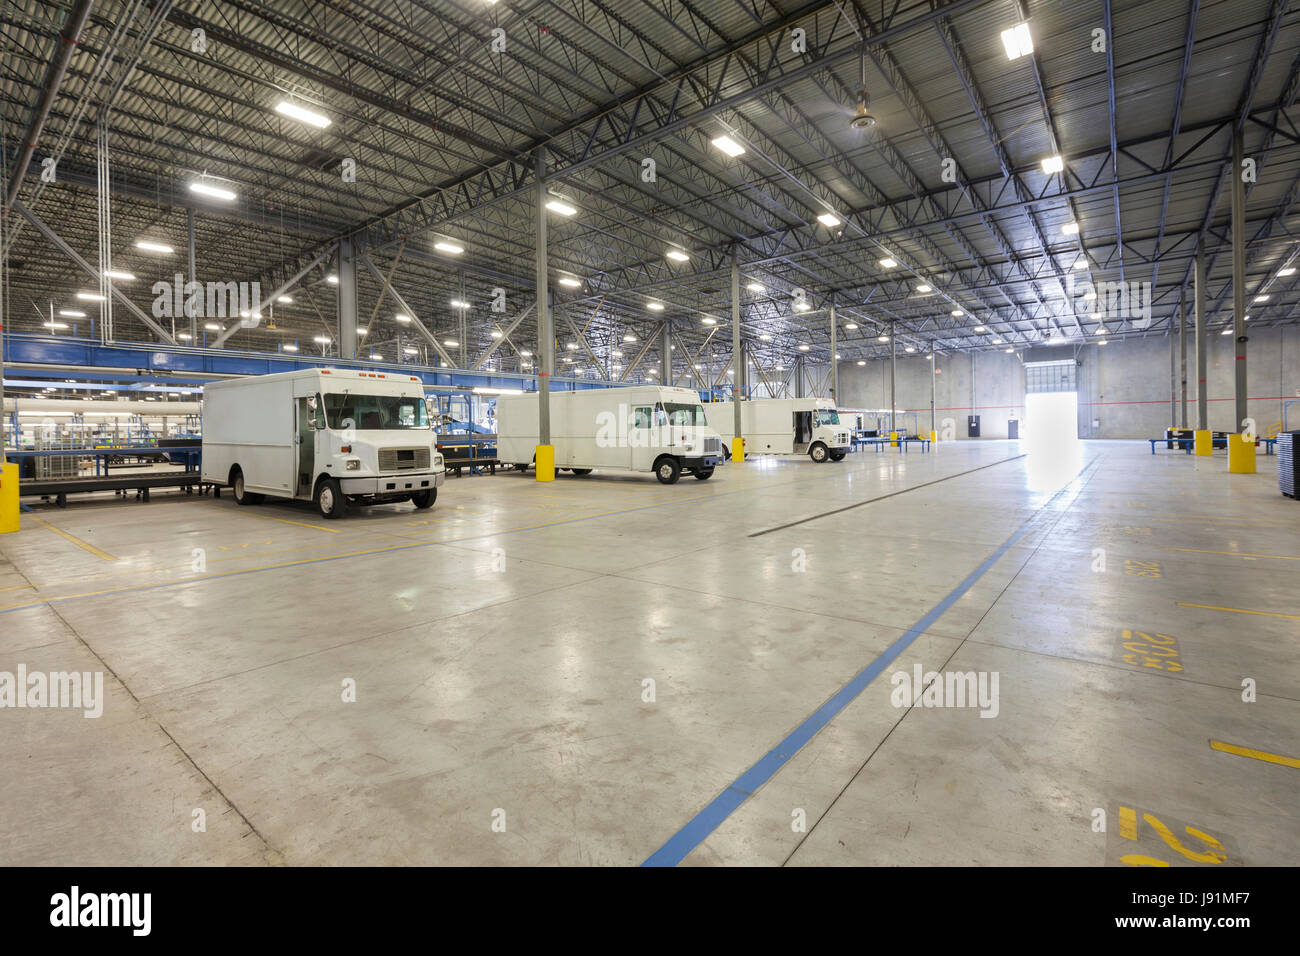 Delivery trucks inside distribution warehouse. - Stock Image